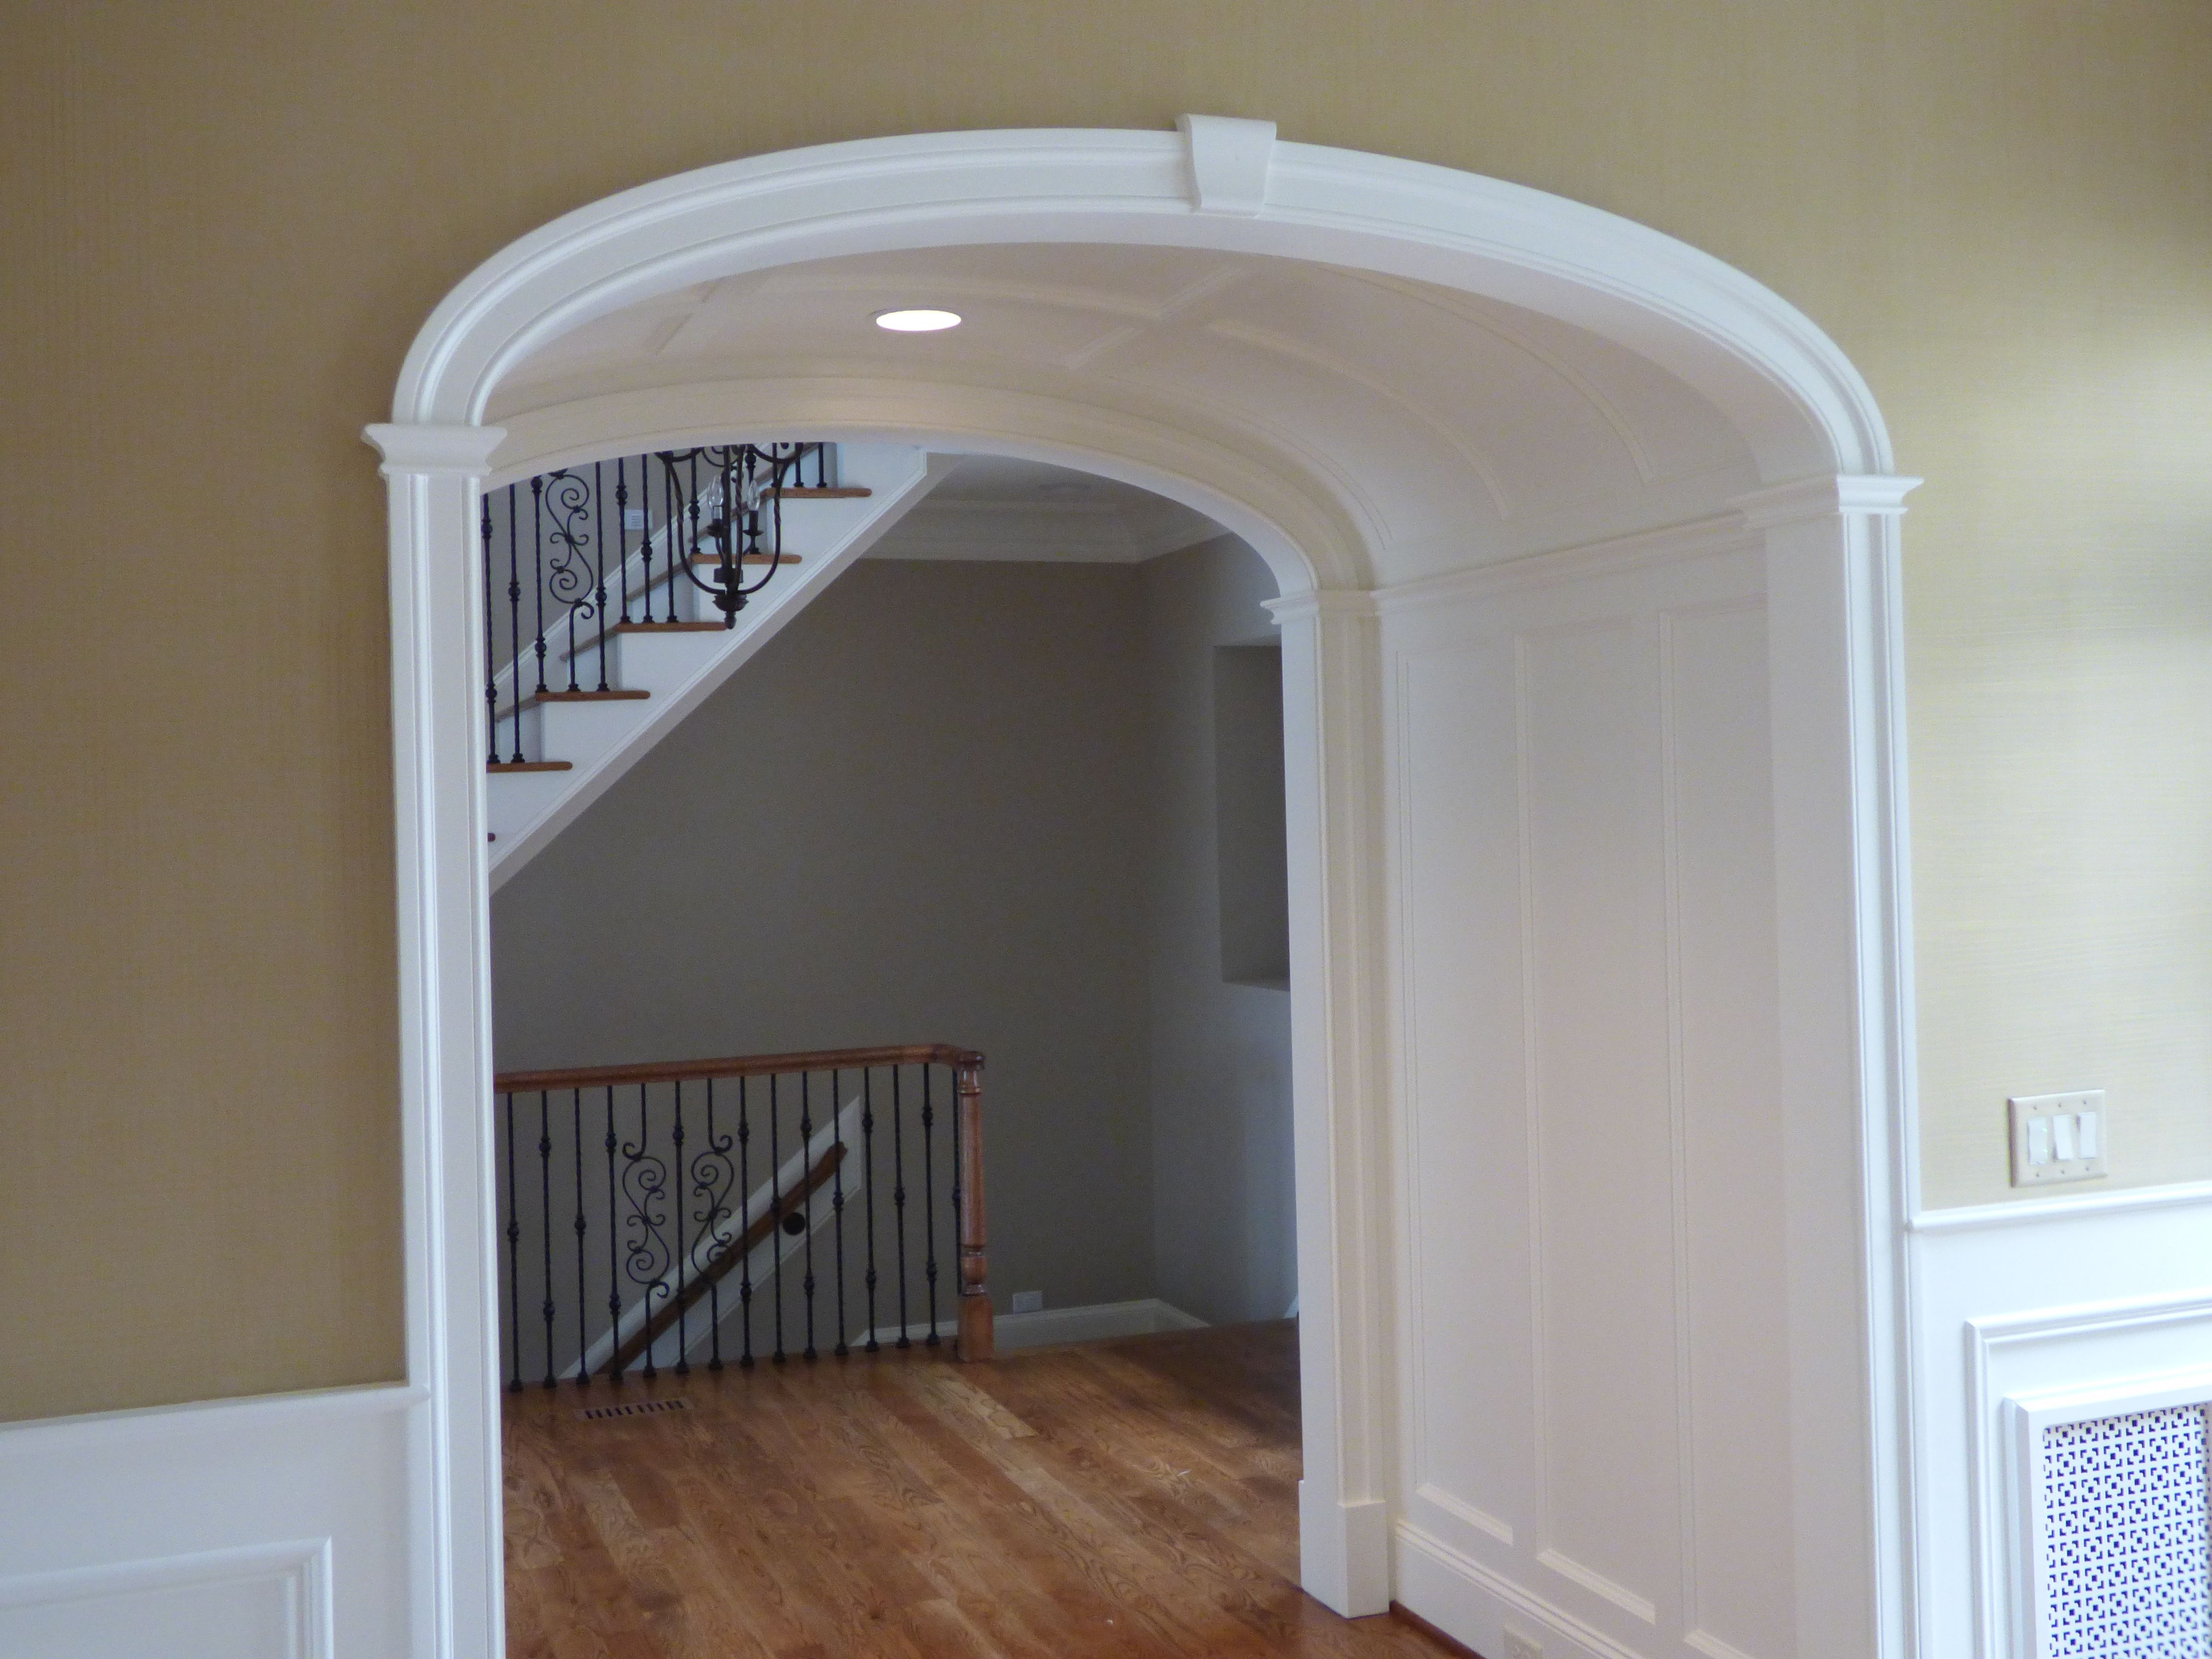 Barrel Ceiling In Entry Way Capped On Each End By Arched Doorways Arch Entryway Interior Wall Design Family Room Layout